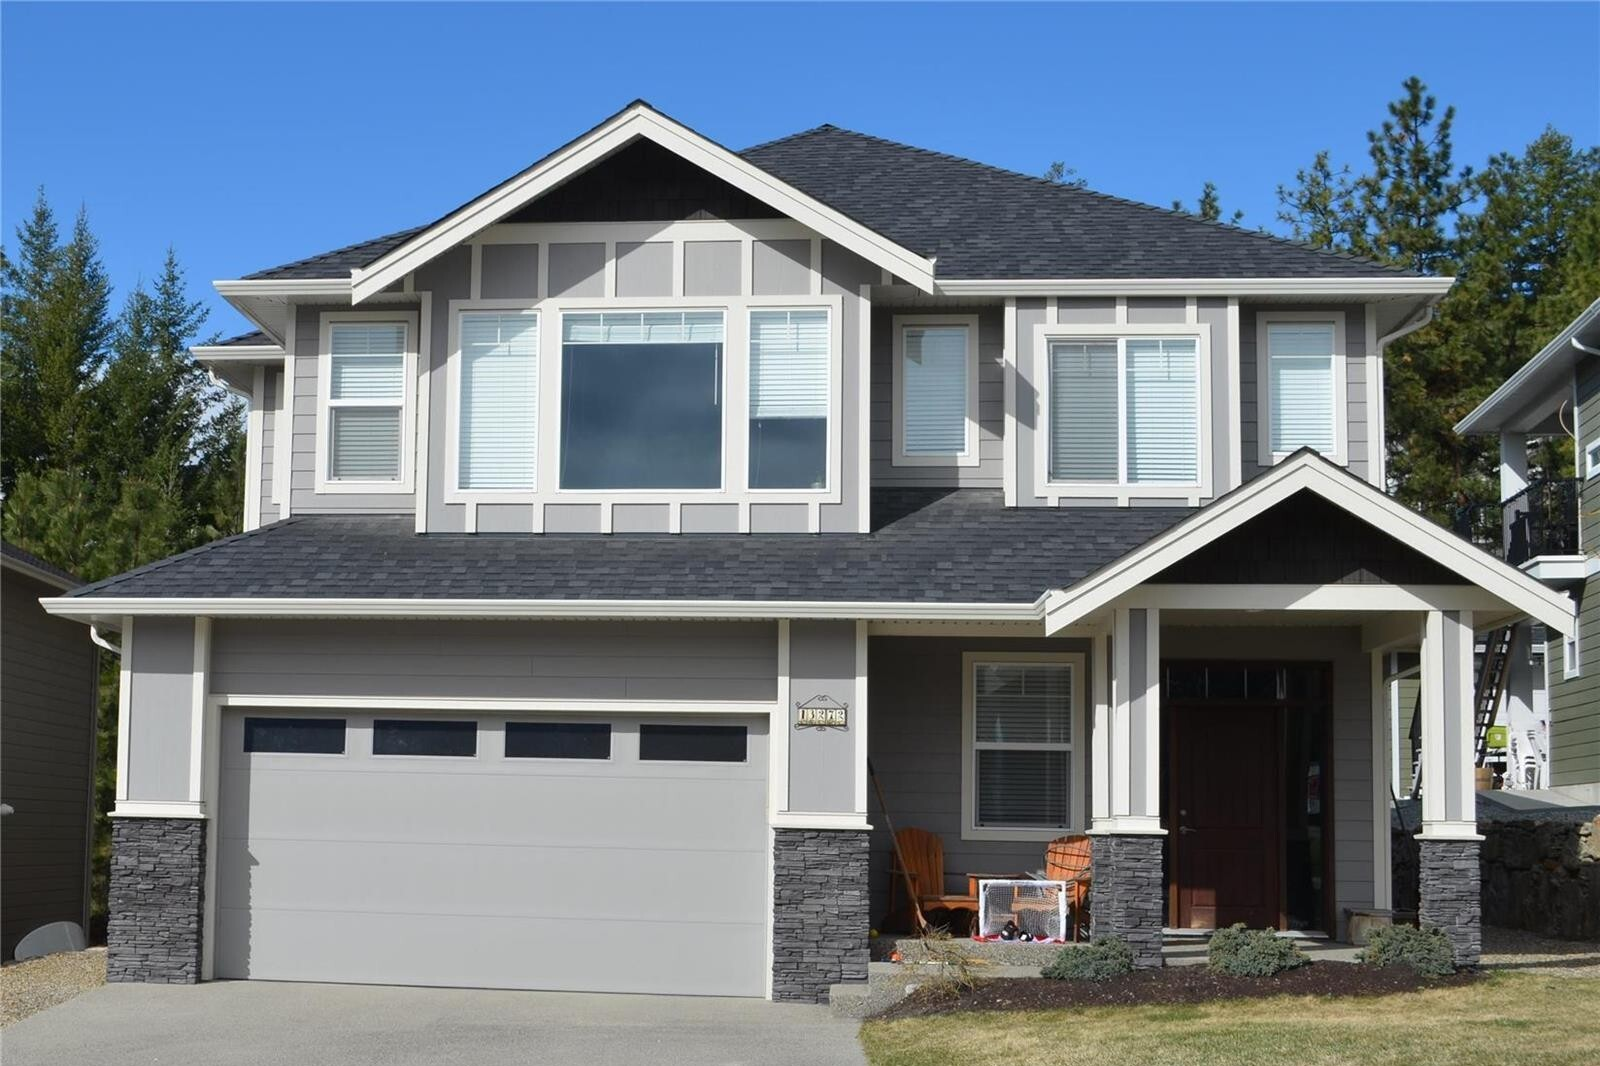 House for sale at 13272 Shoreline Dr Lake Country British Columbia - MLS: 10201493